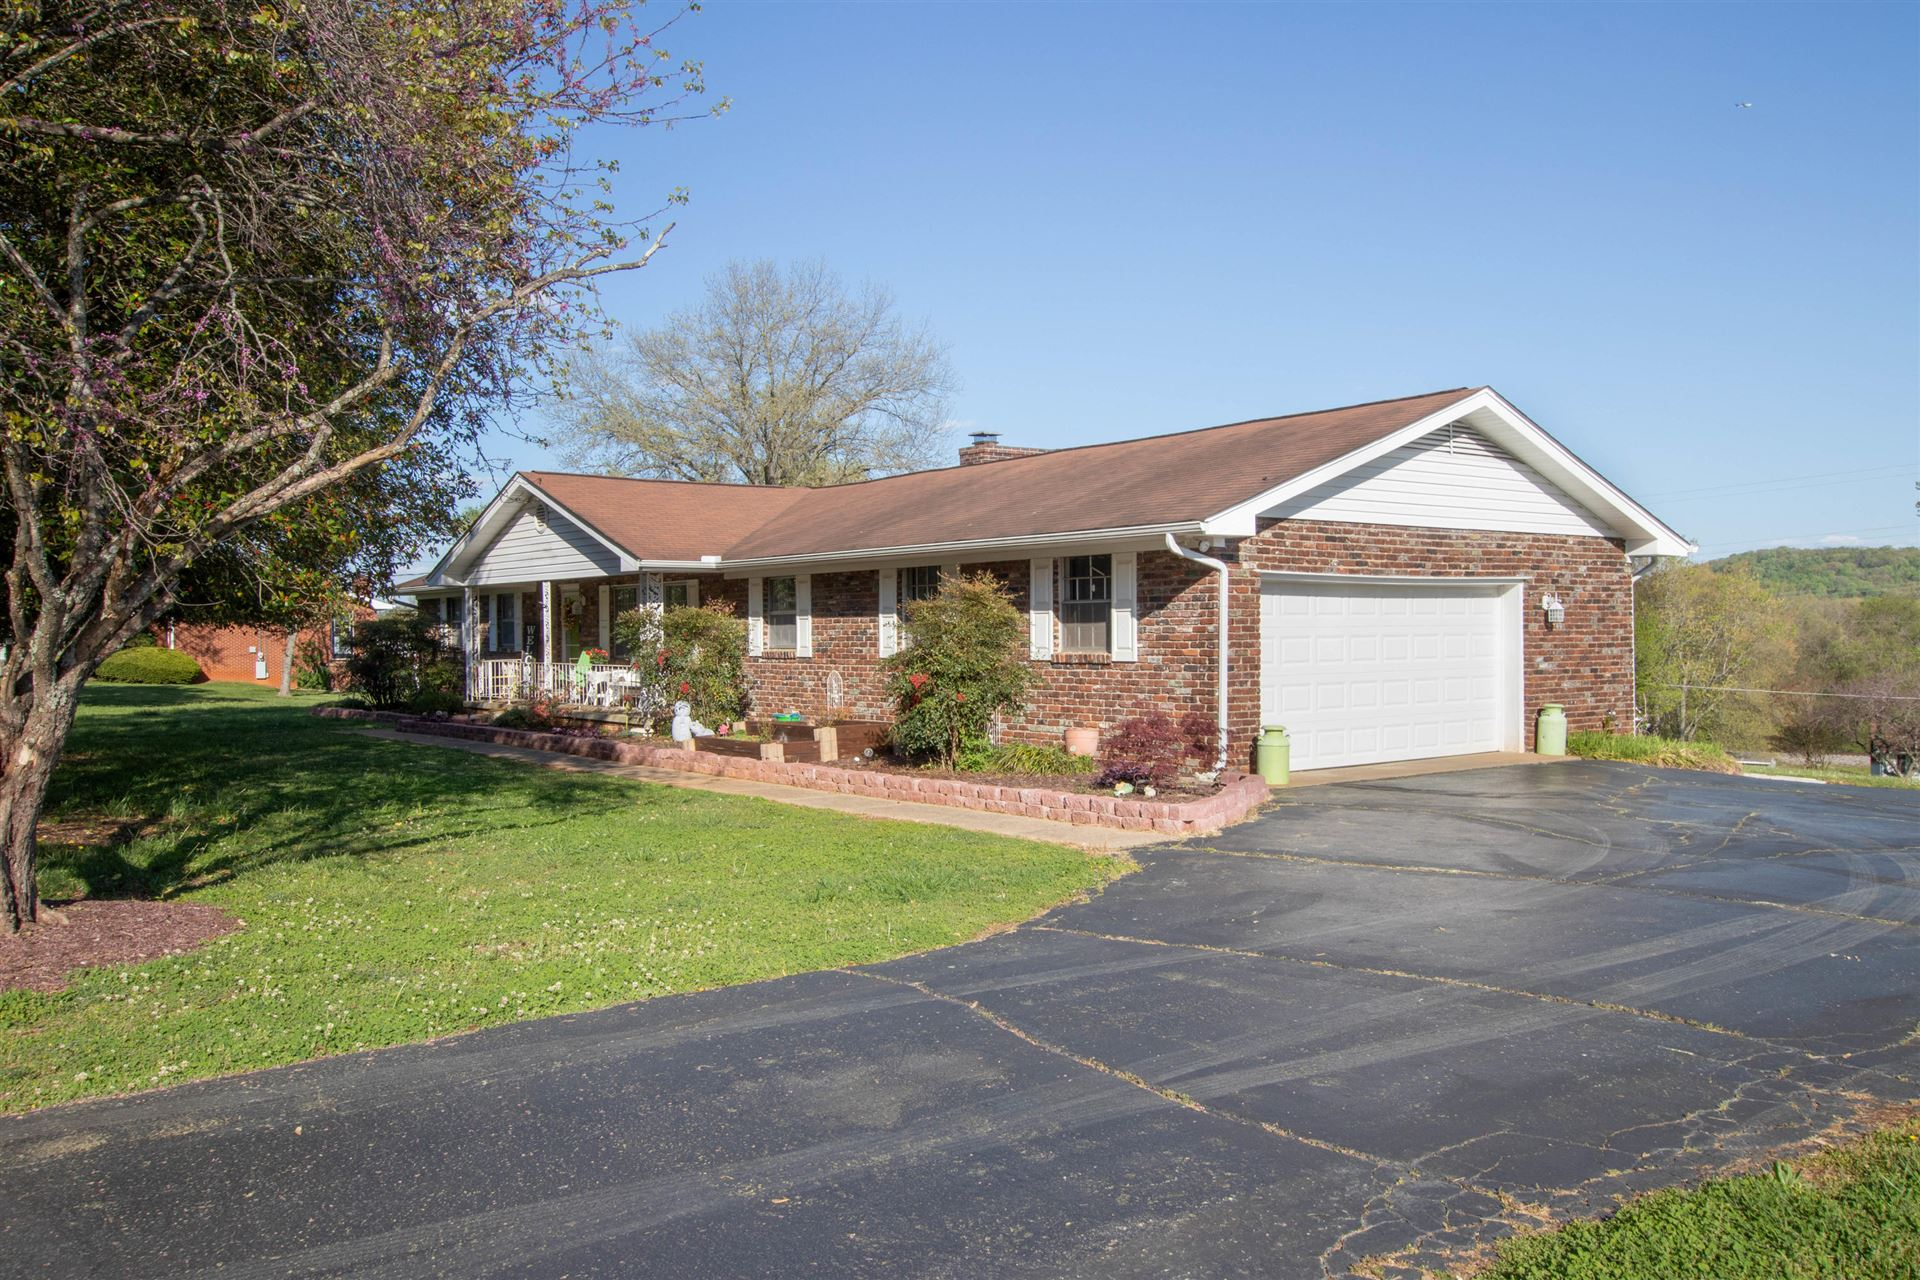 Photo of 6312 Bowstring Tr, Knoxville, TN 37920 (MLS # 1149590)